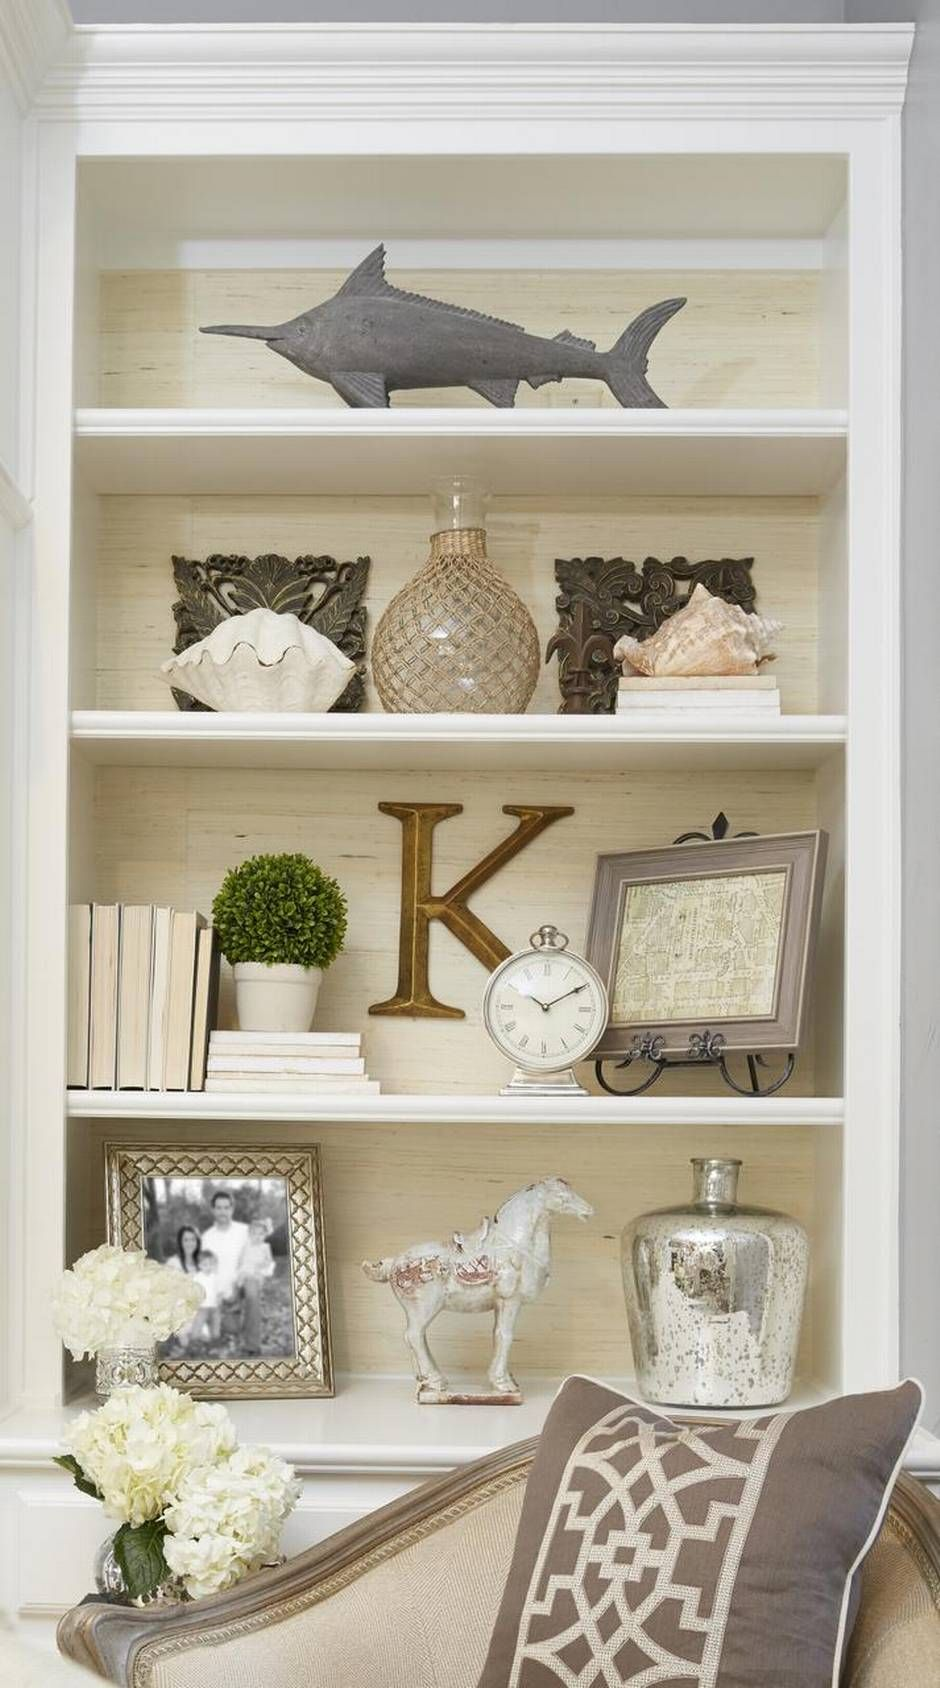 Create A Bookcase Piled High With Personality And Style Bookcase Decor Neutral Kitchens Decor Bookshelf Decor